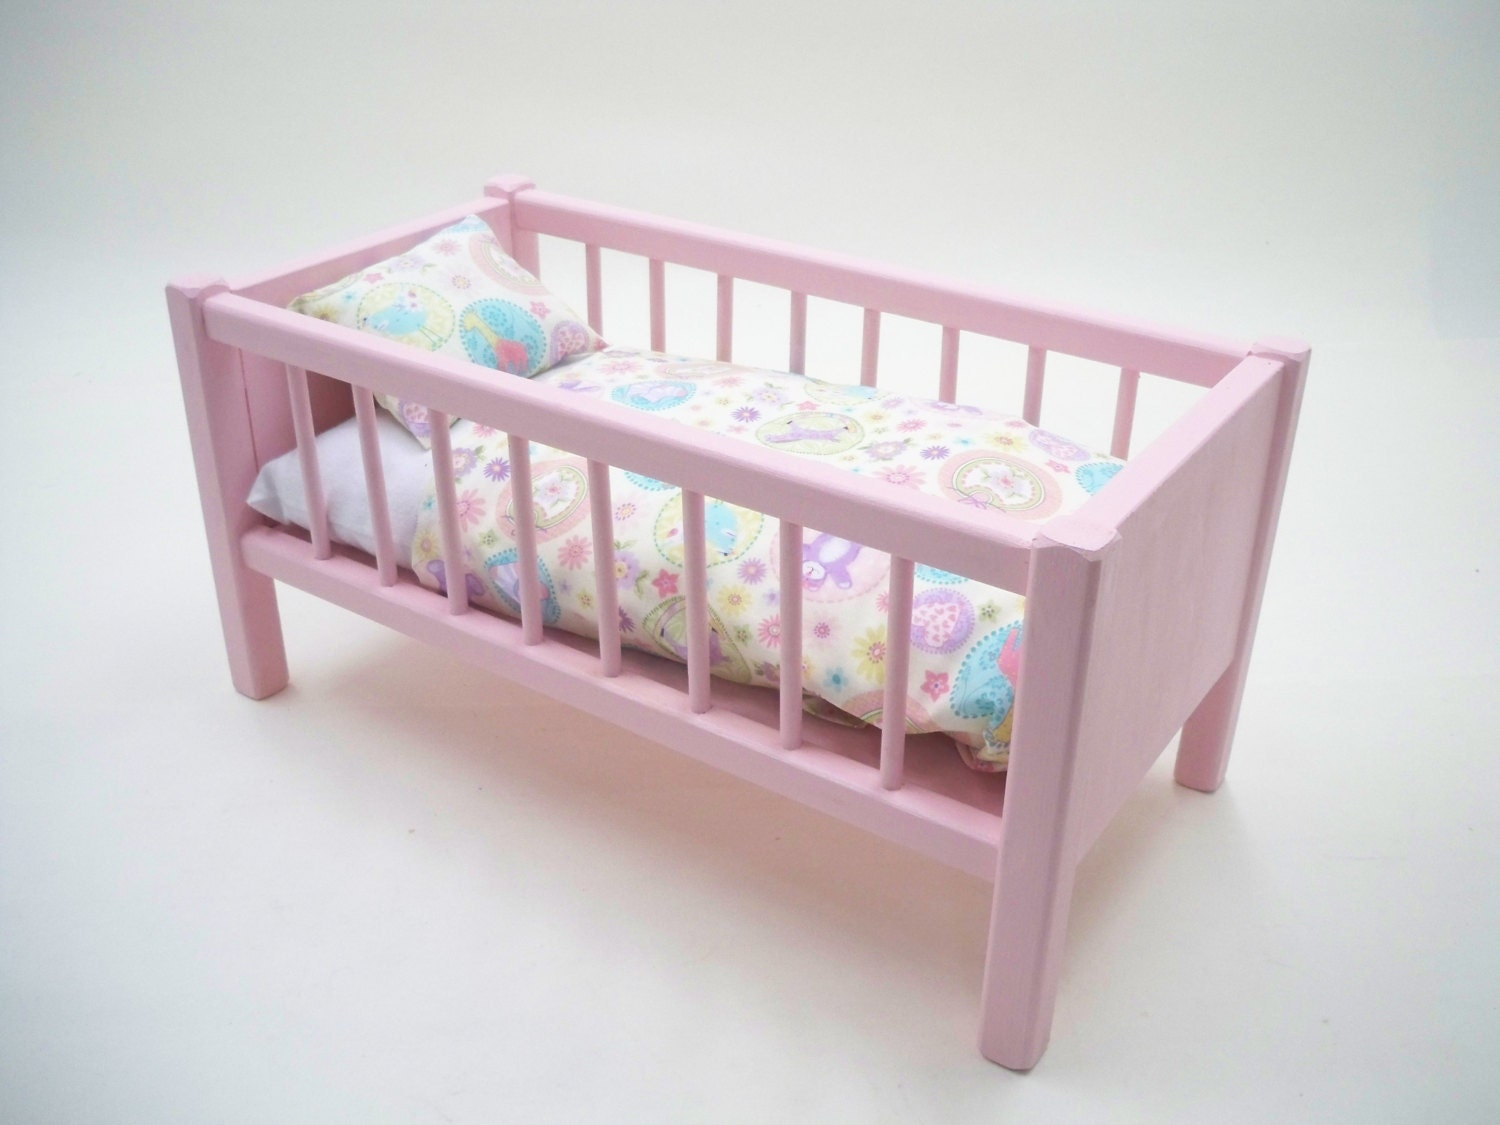 Crib for babies philippines - Wood Doll Bed Doll Bed American Doll Bed Doll Crib Girls Toy 18inch Doll Bed Baby Doll Crib Baby Doll Bed